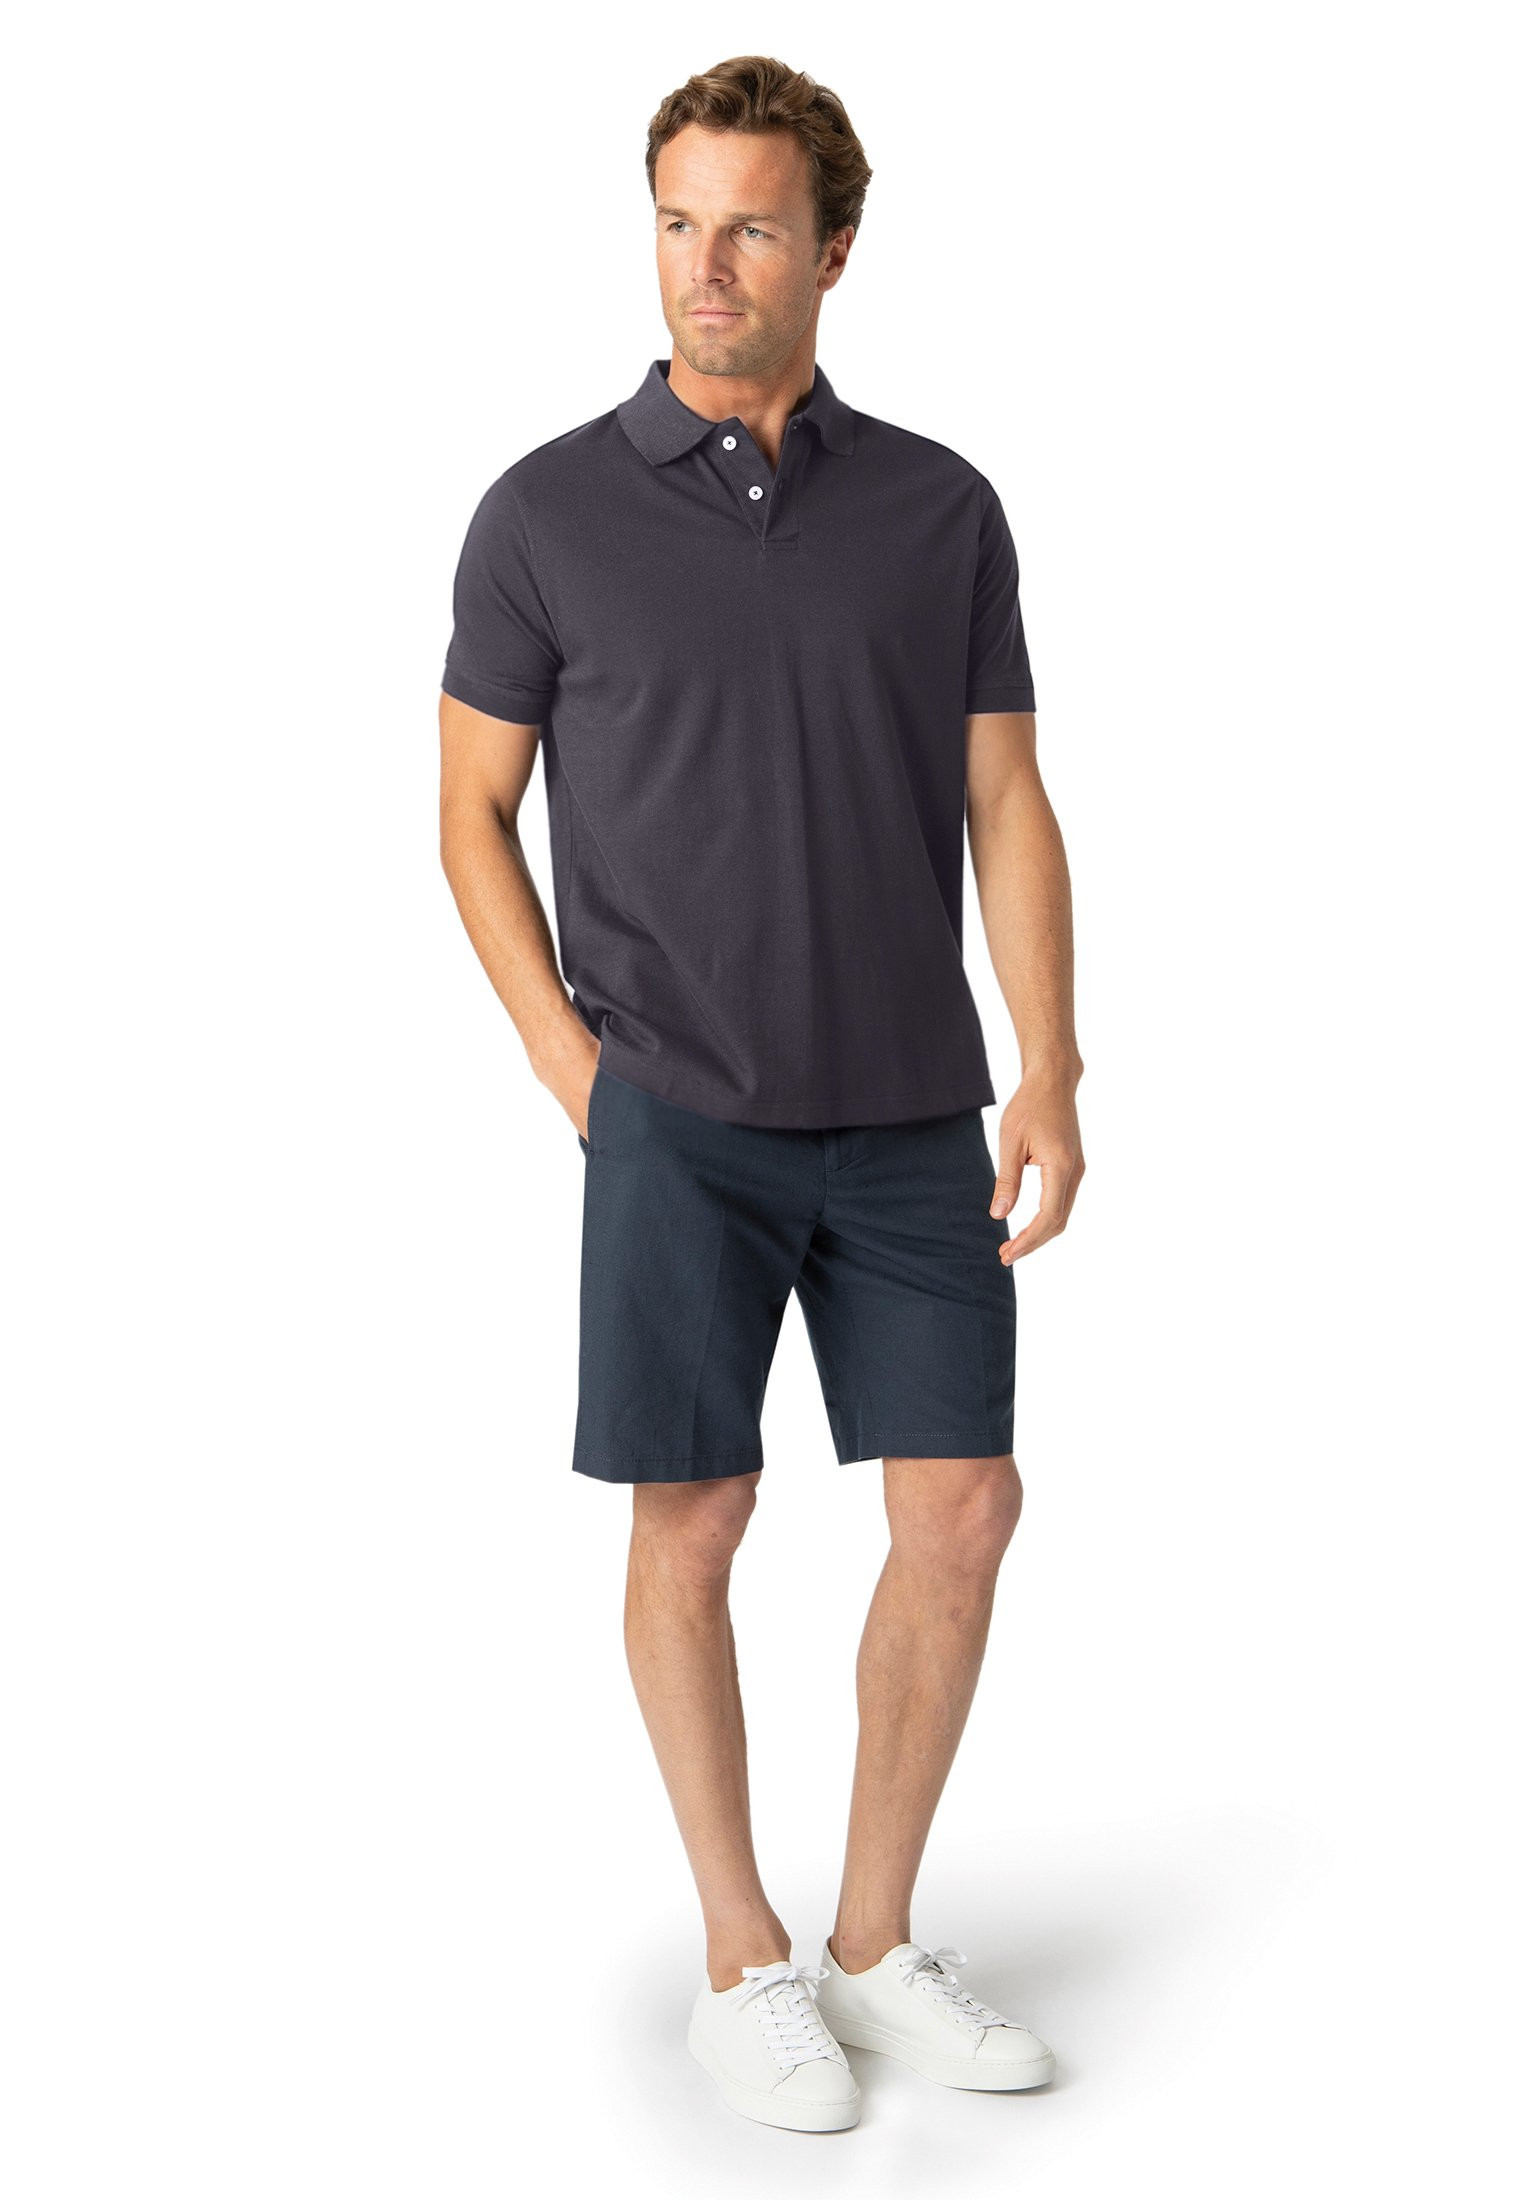 Milford Navy 100% Pique Cotton Polo Shirt